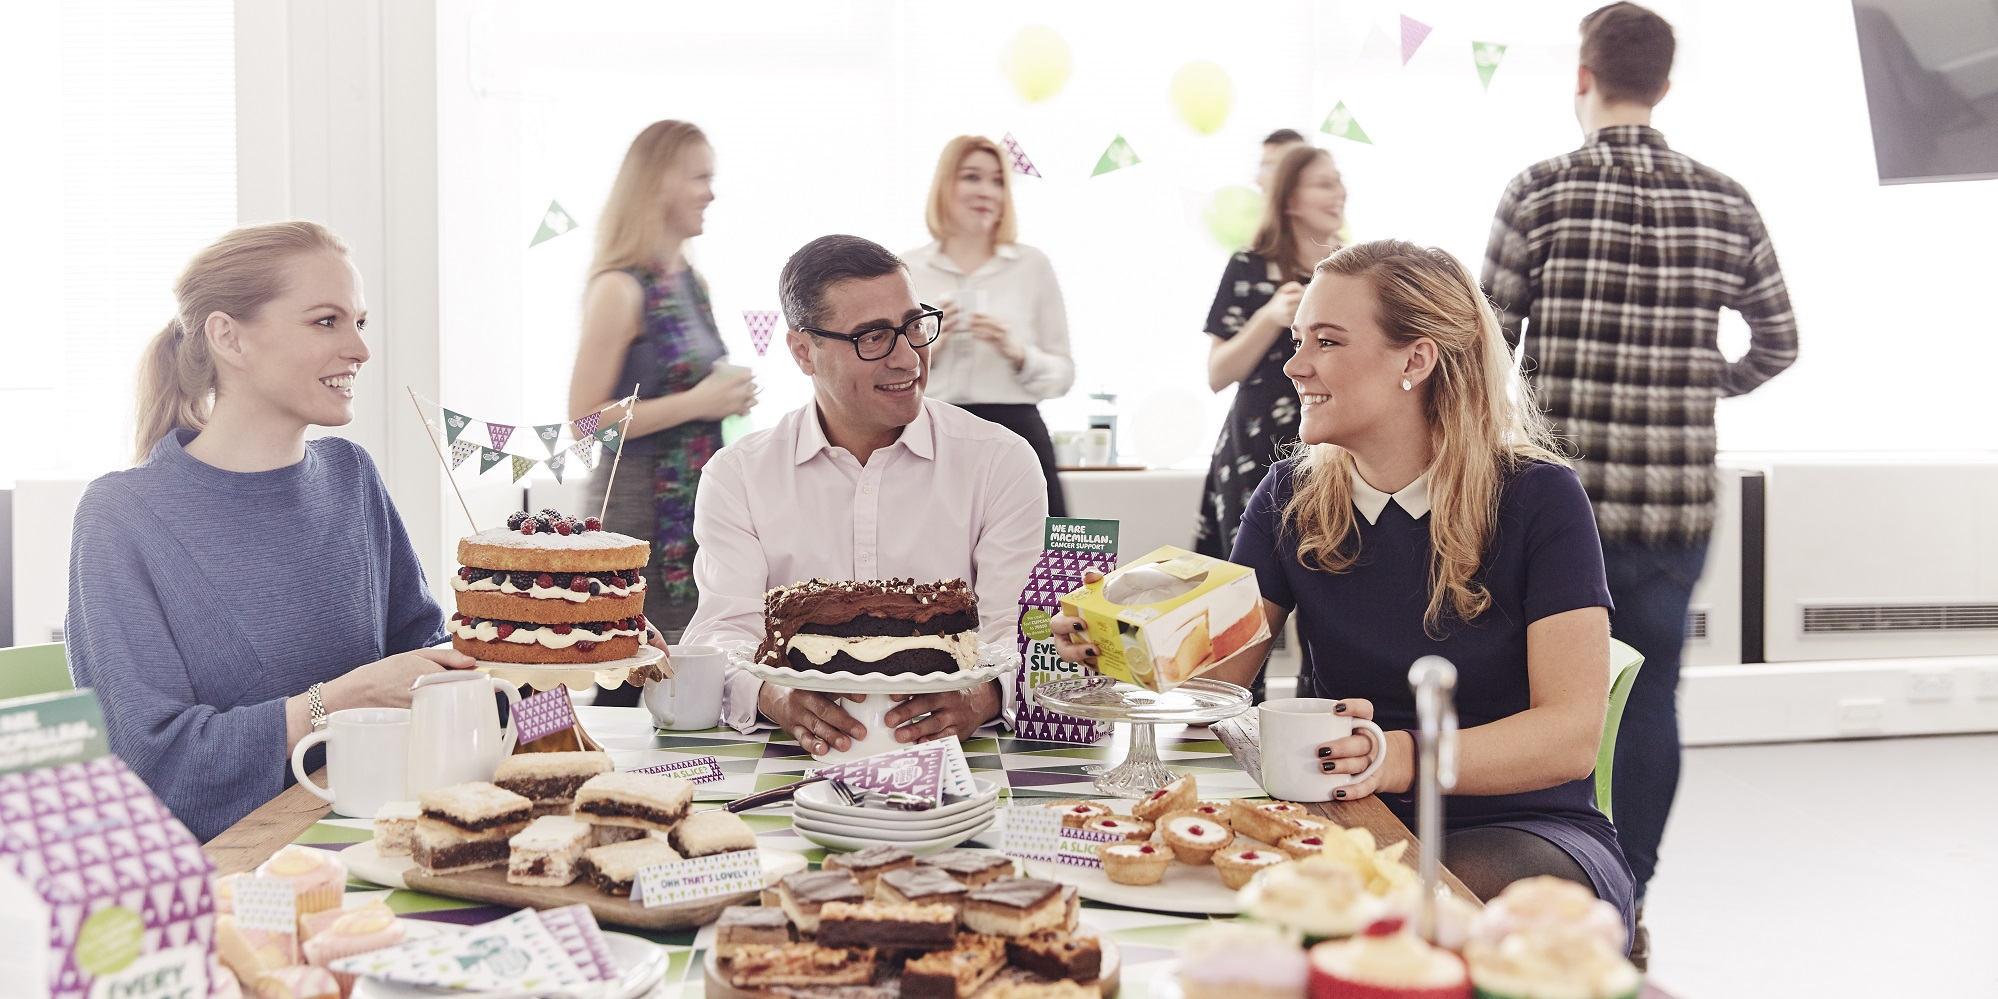 2. Macmillan Cancer Support - World's Biggest Coffee Morning